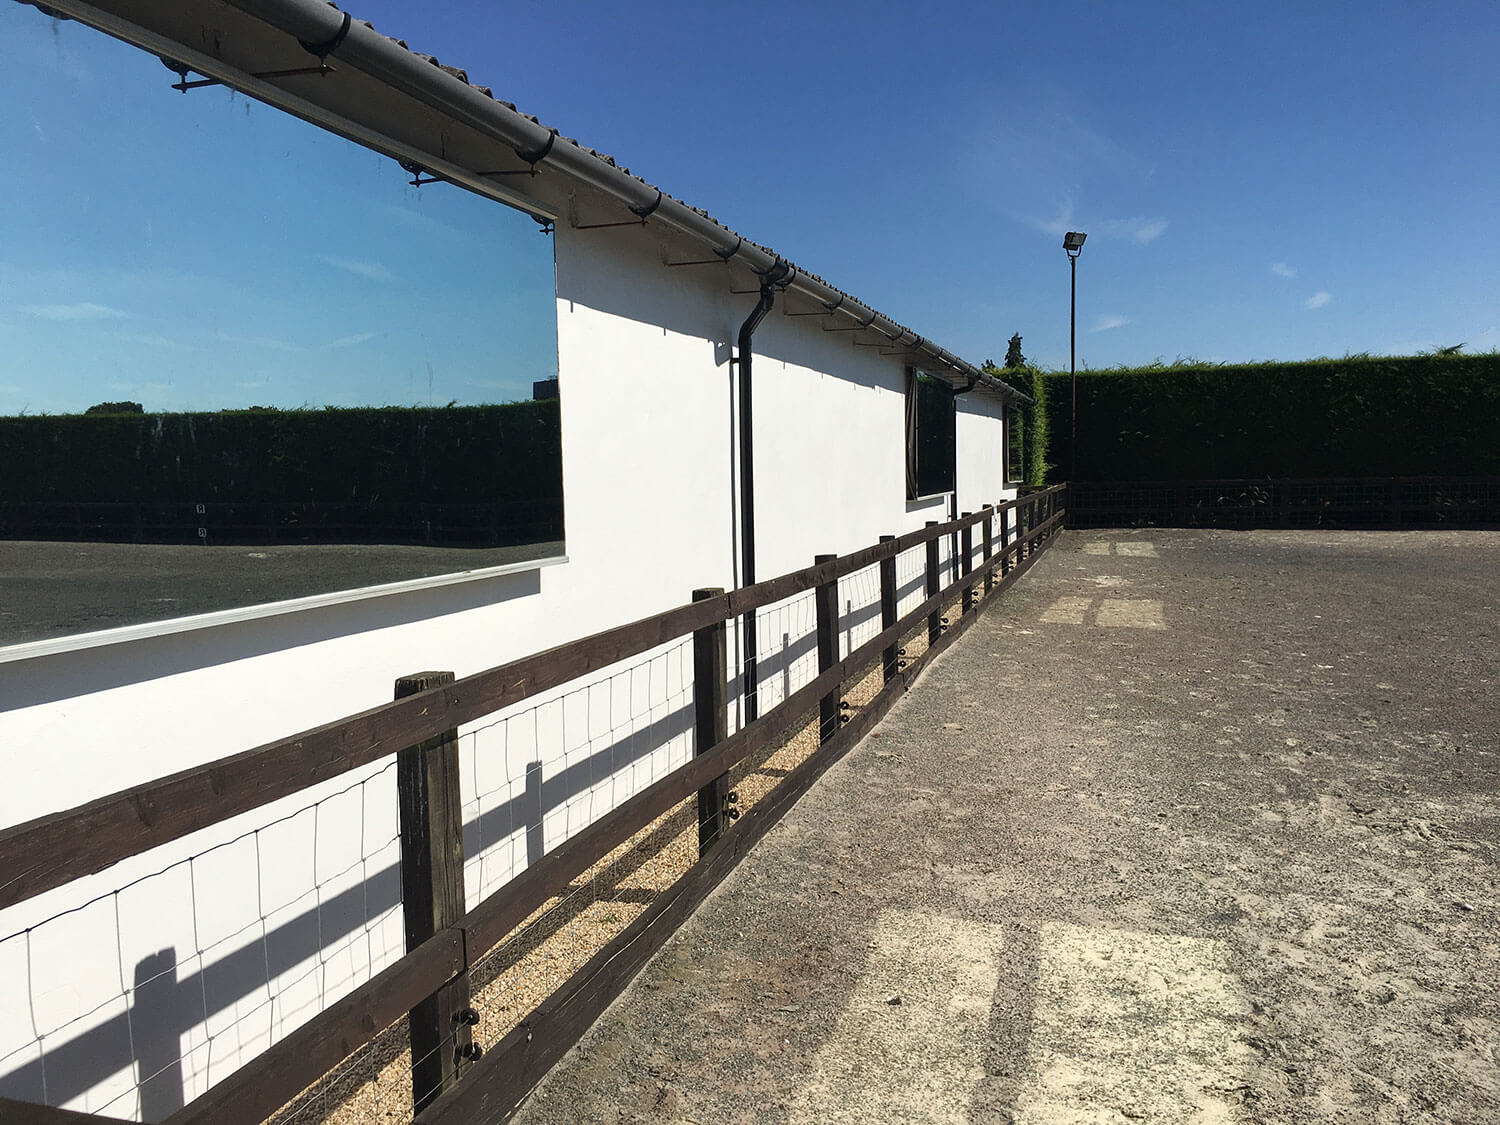 Mirrors for dressage